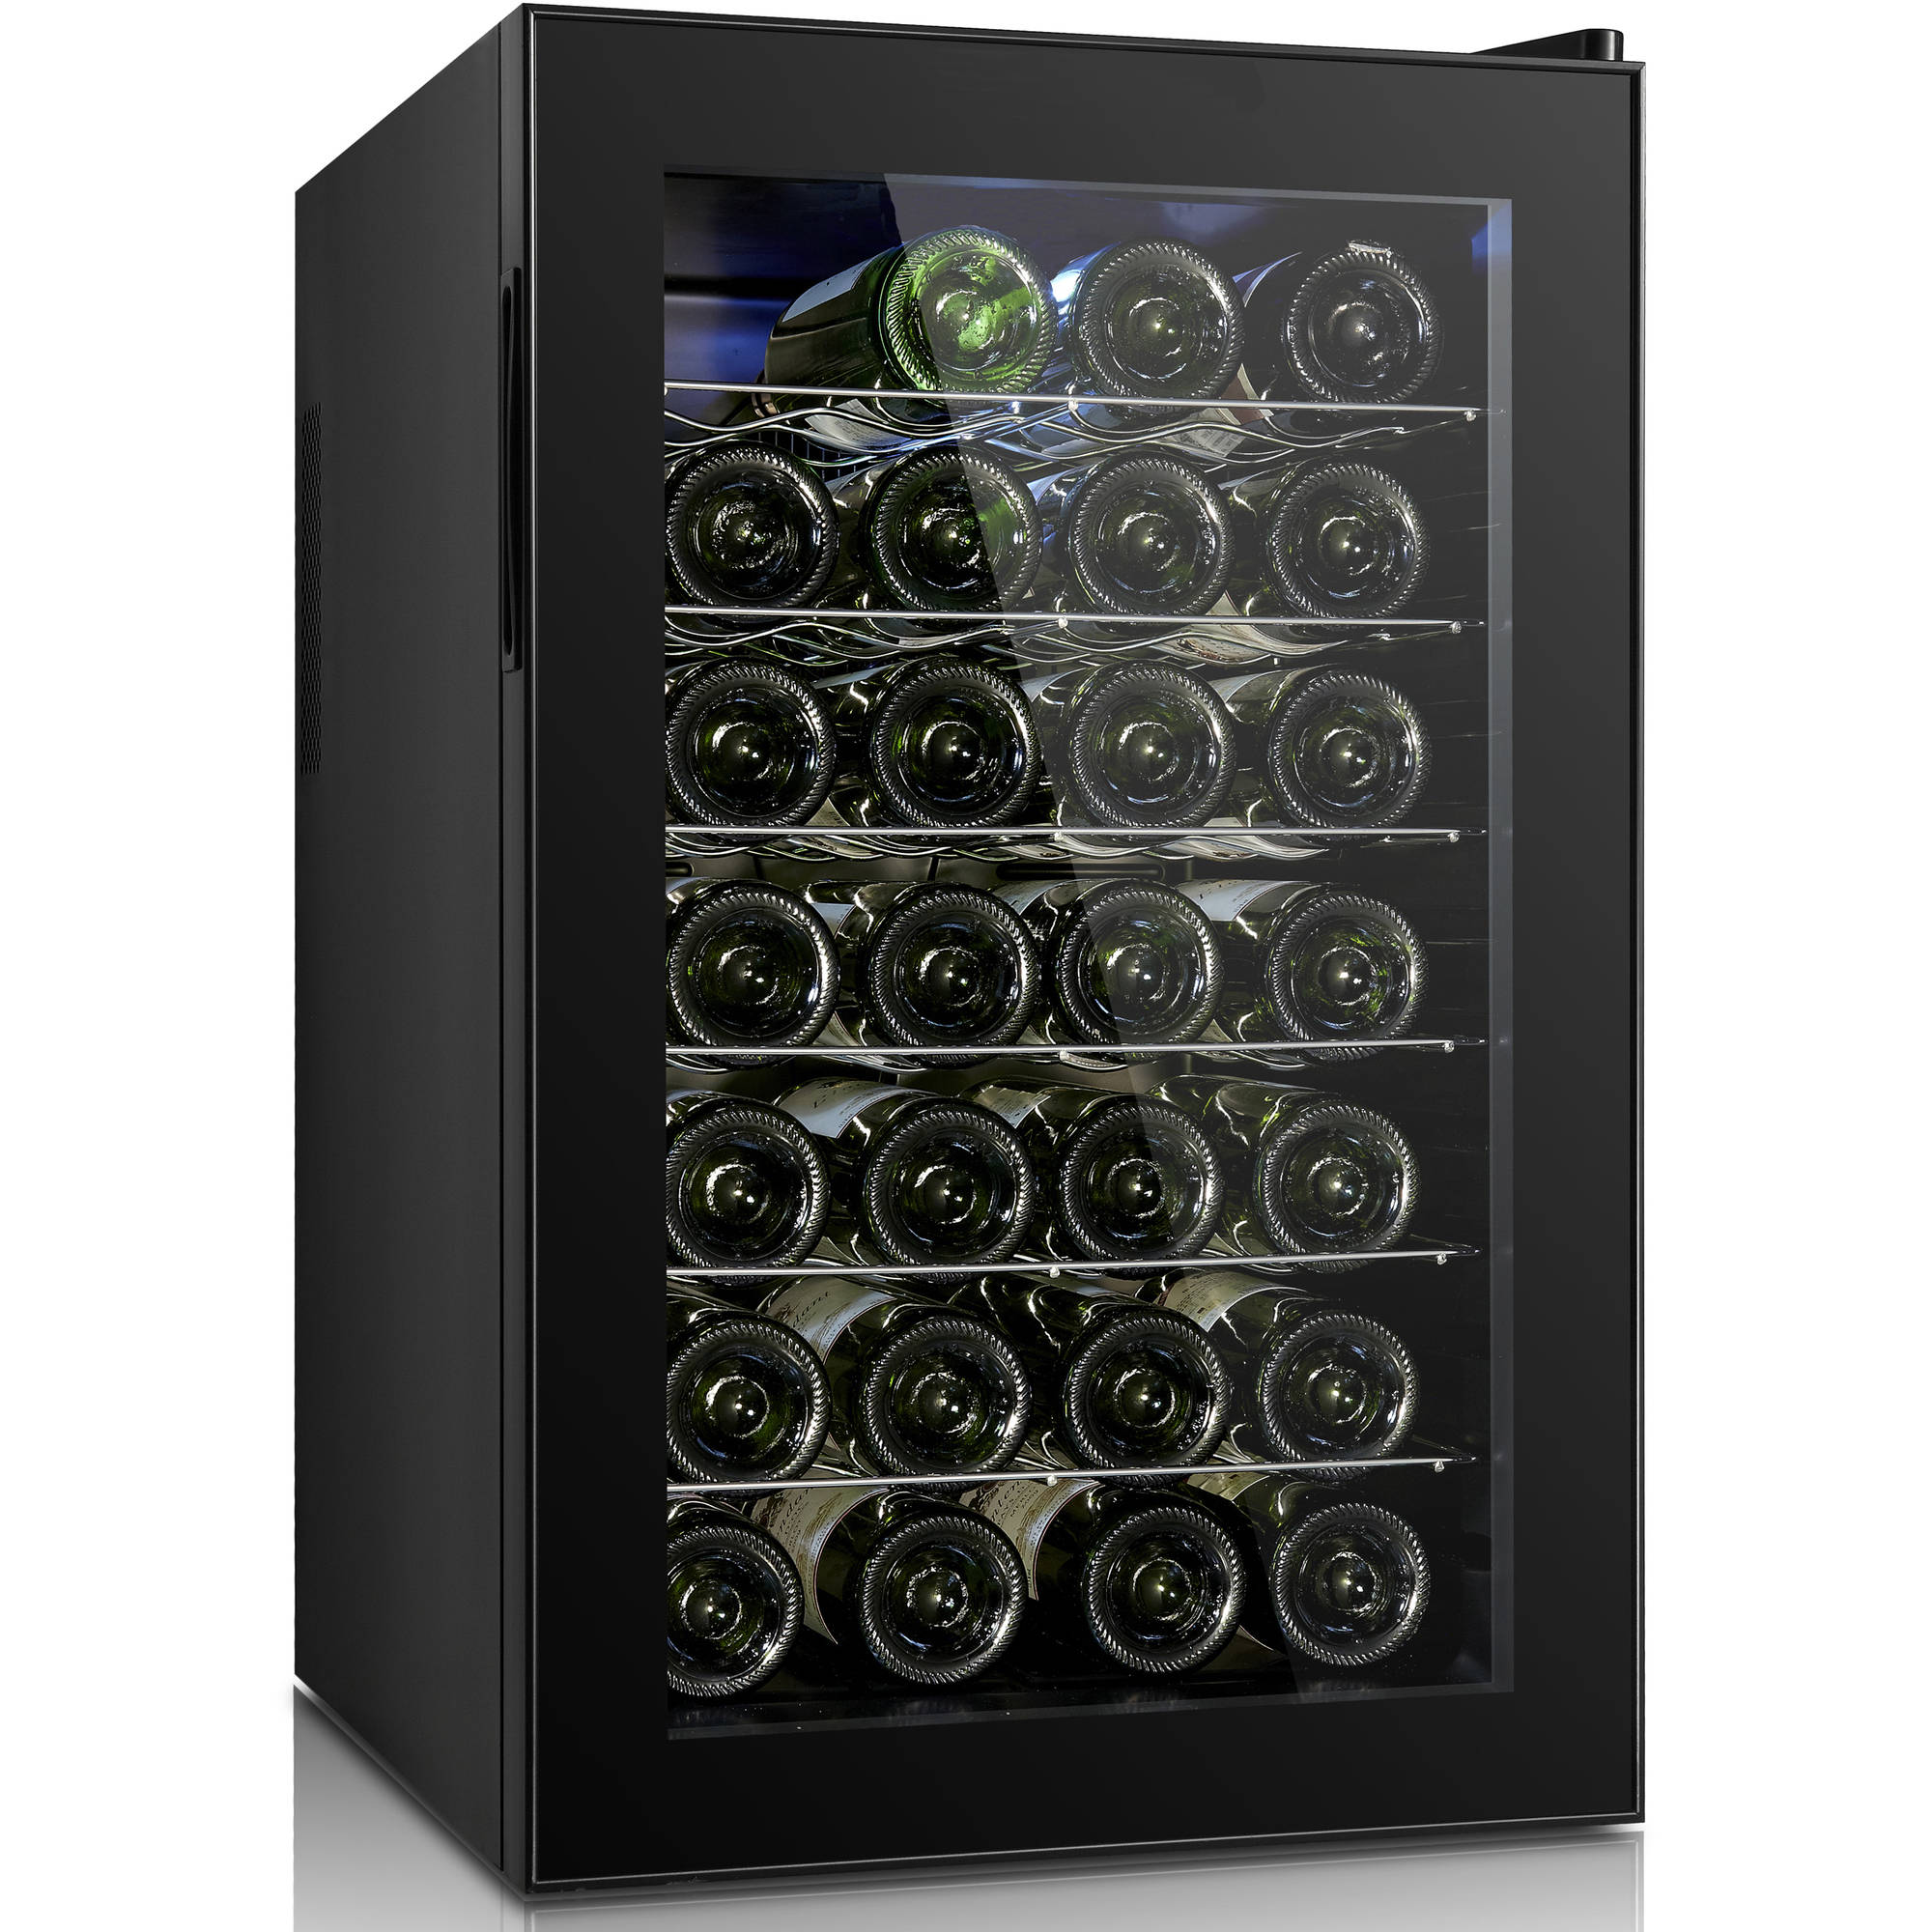 Igloo Quiet 28-Bottle Wine Cooler with Mechanical Temperature Control